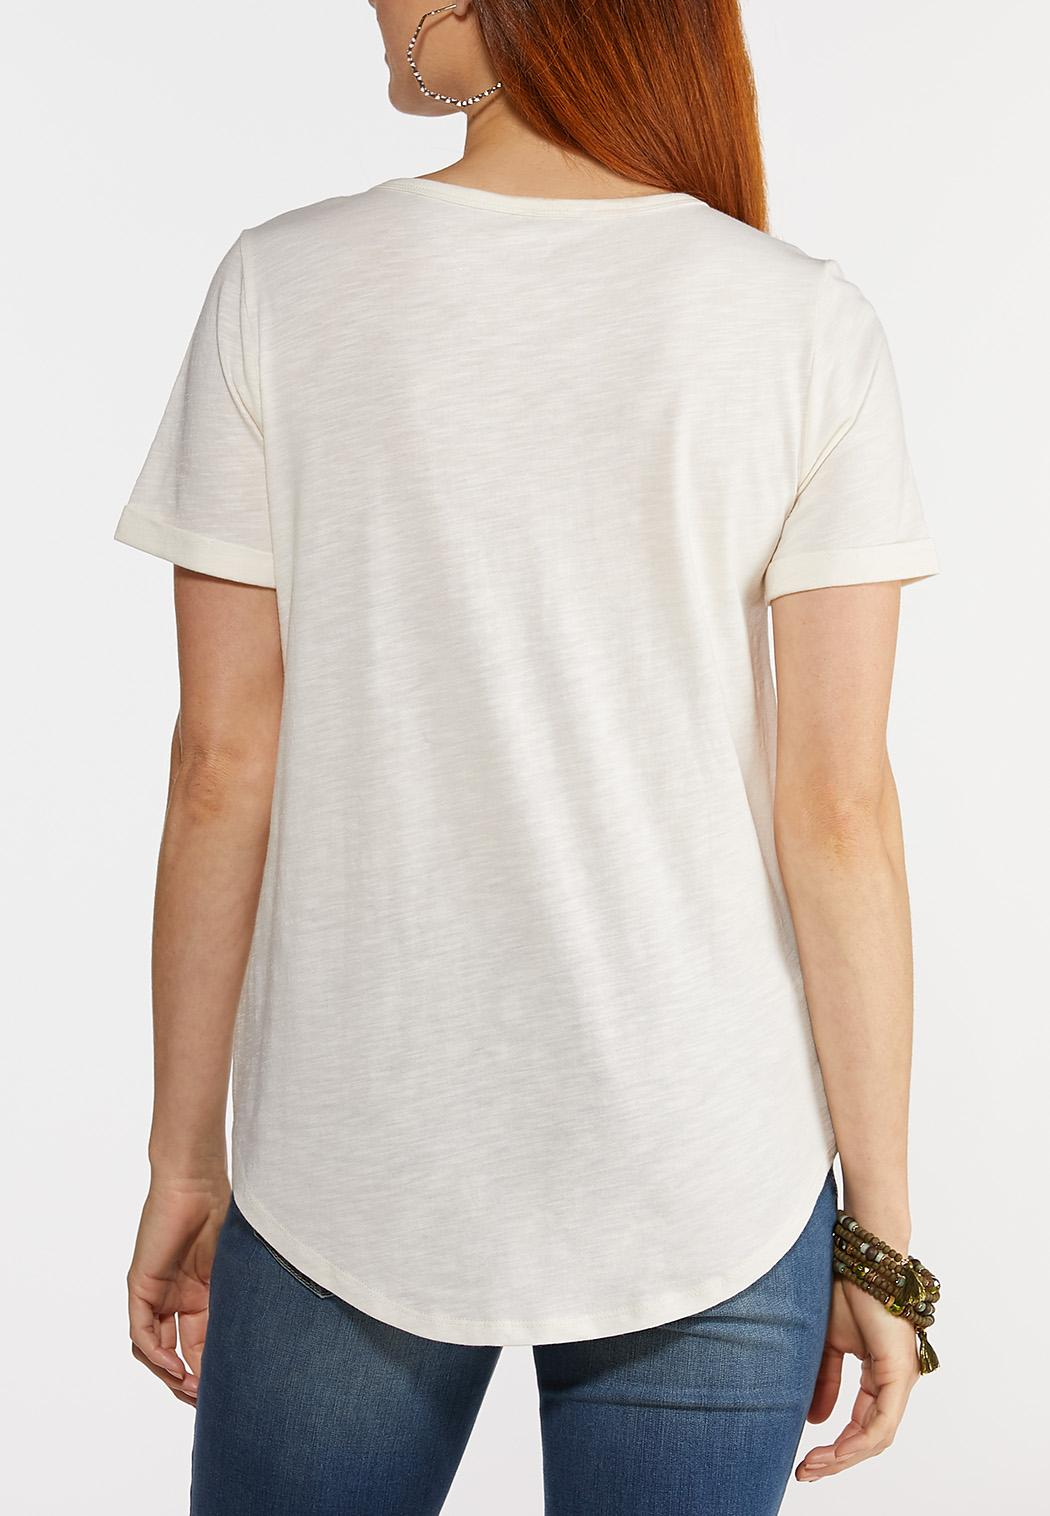 Plus Size Yes To Adventures Tee (Item #44314636)